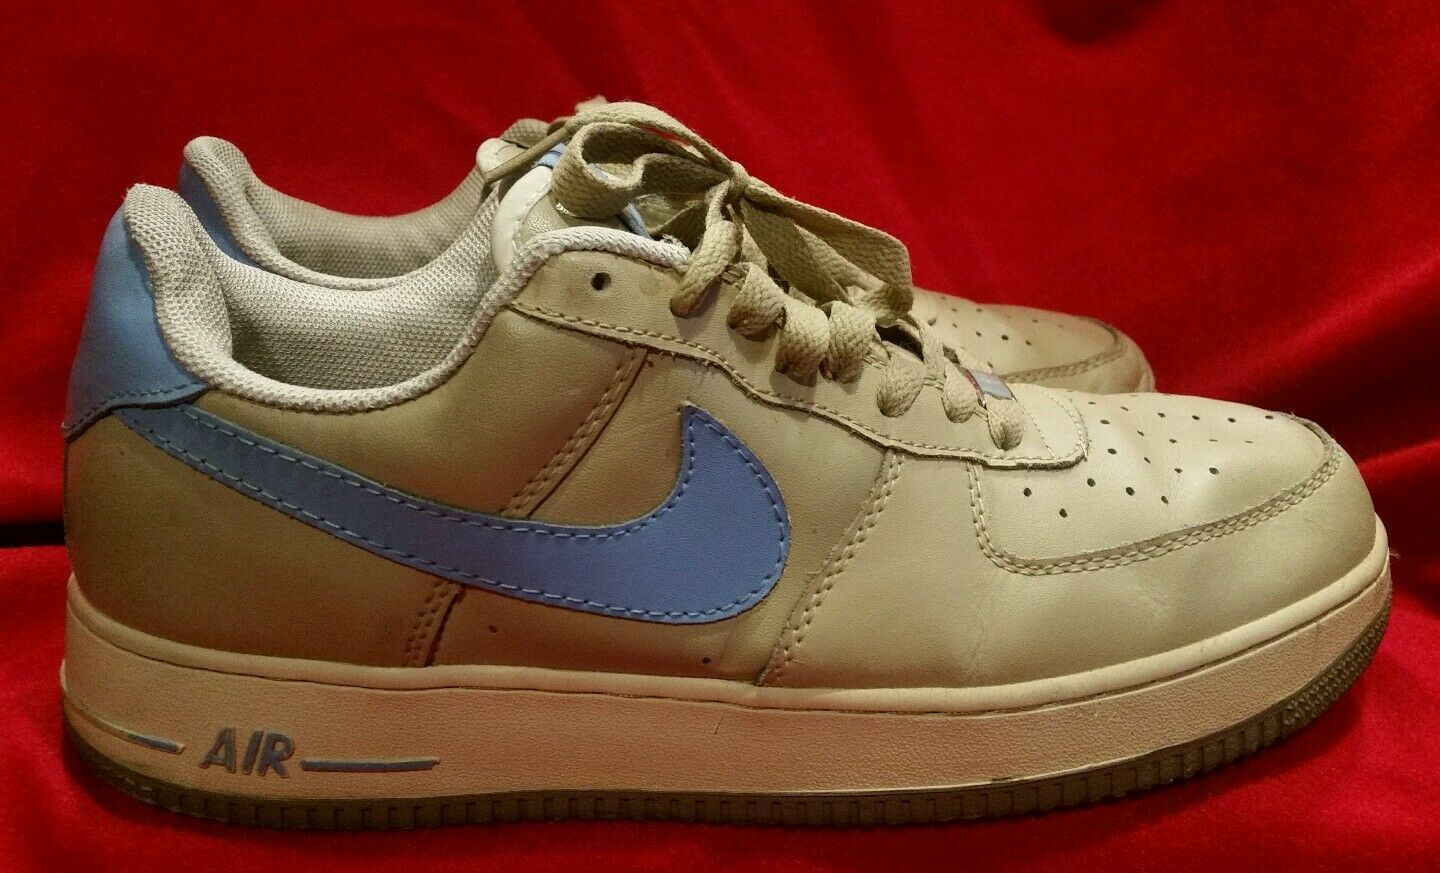 Nike air size 10 The latest discount shoes for men and women Special limited time